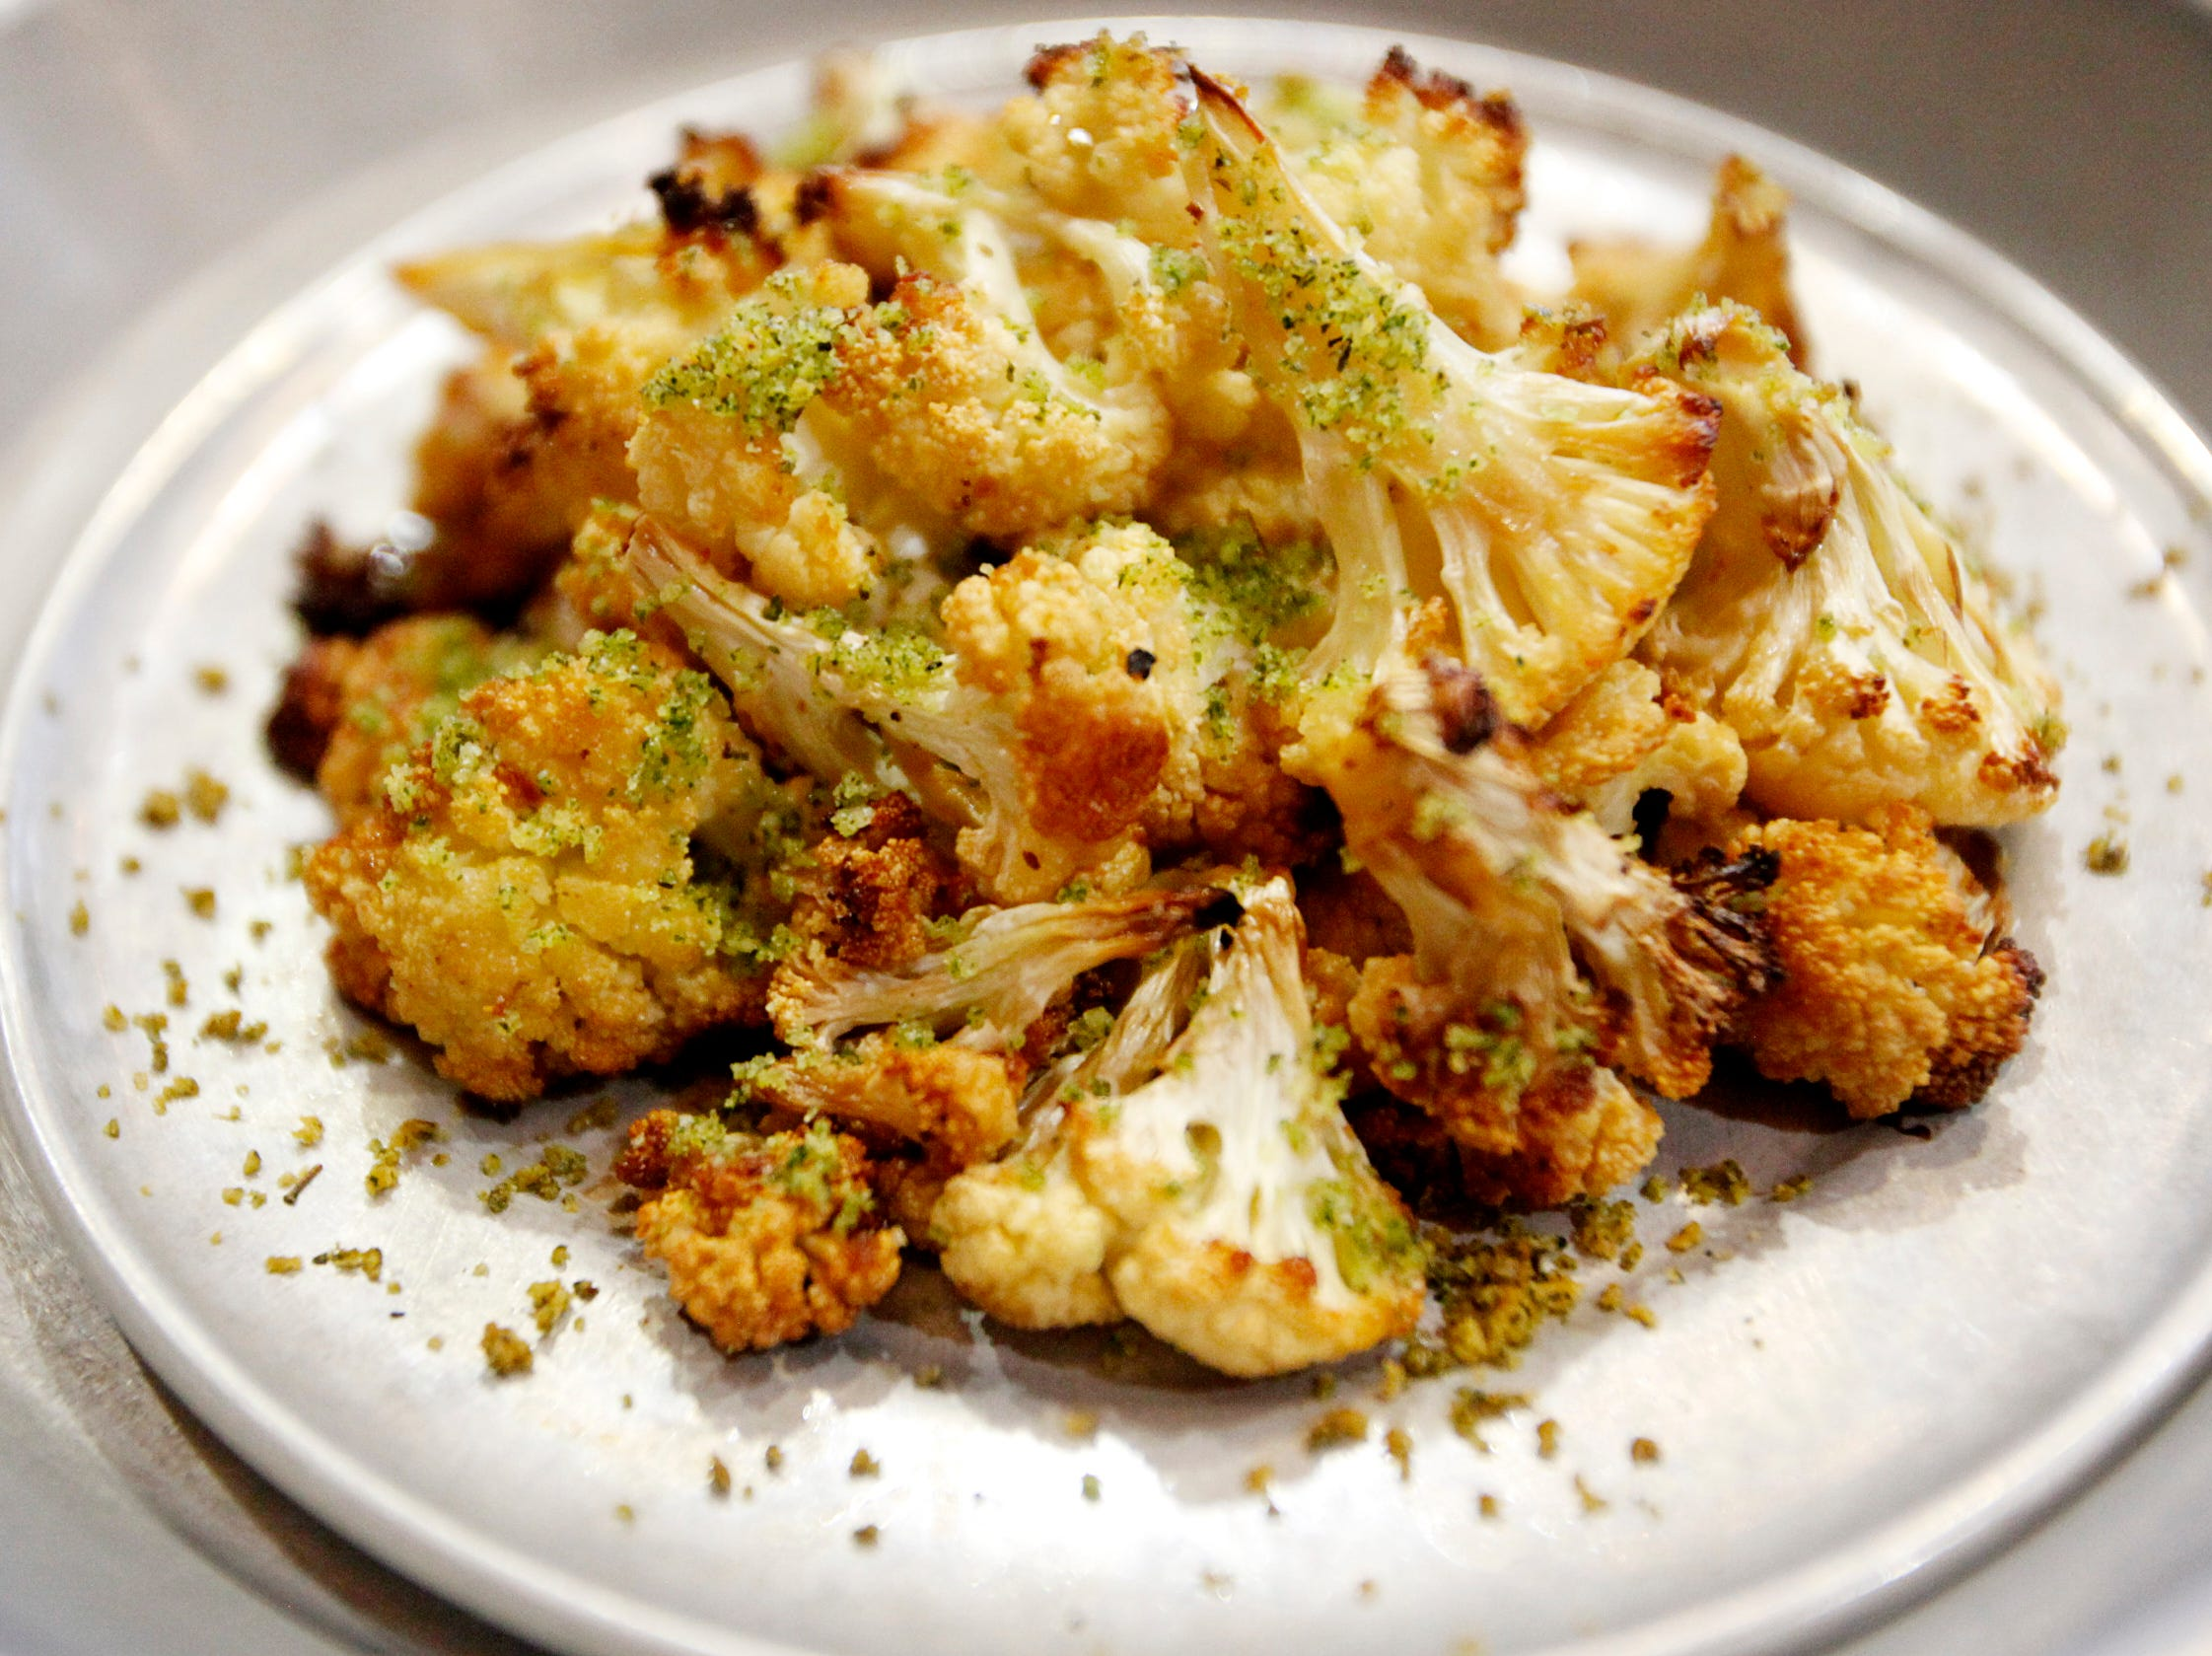 Roasted cauliflower from Monk's Flask in Biltmore Park March 1, 2019.